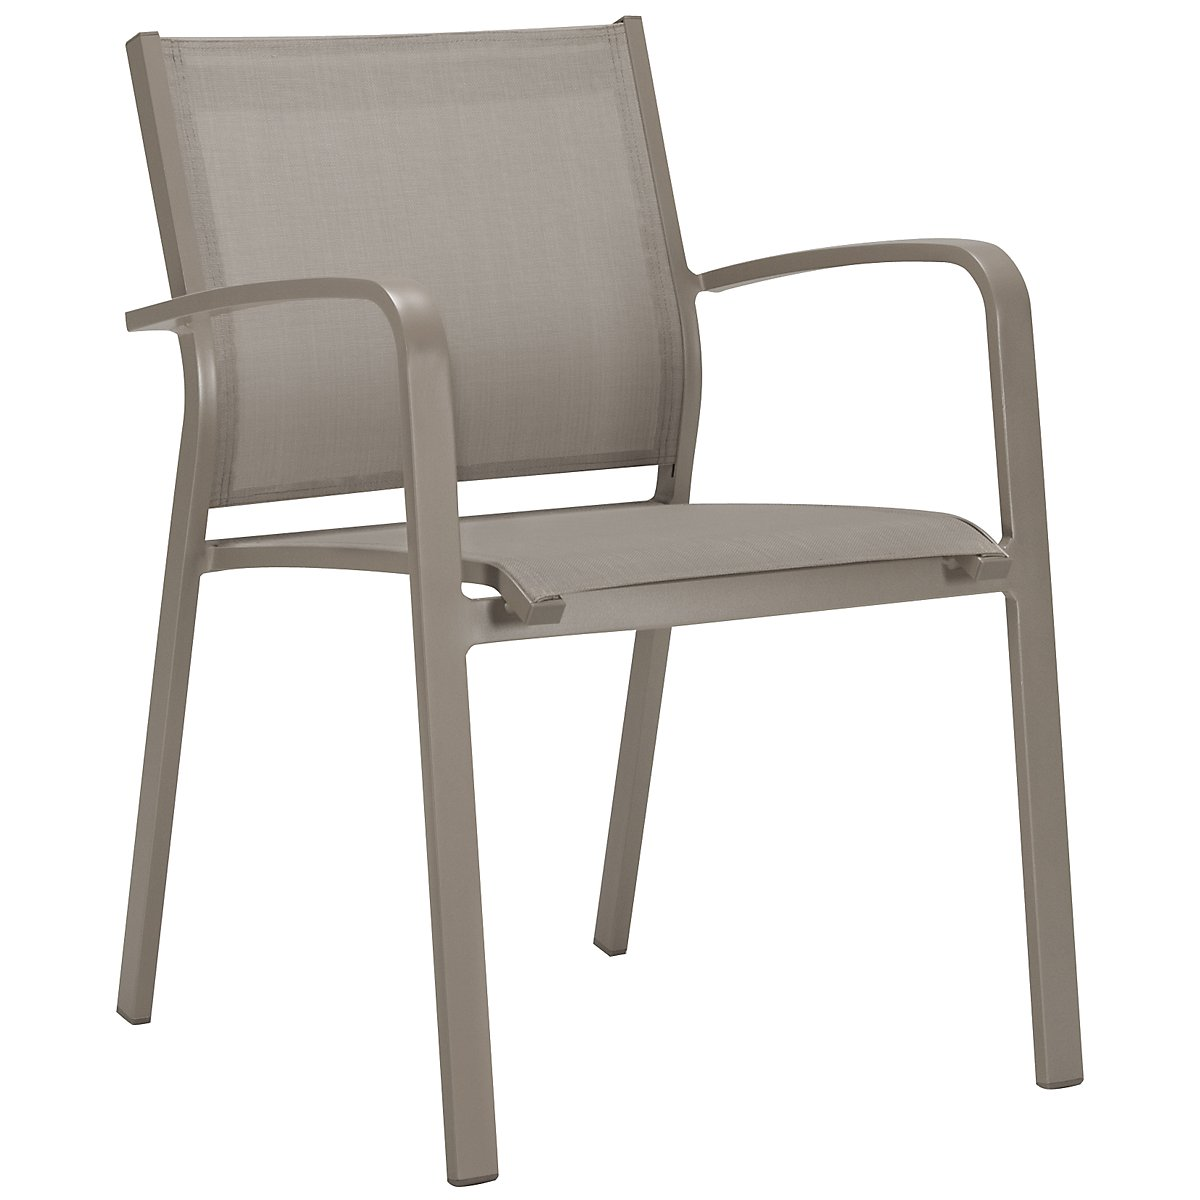 Lisbon Khaki Sling Chair